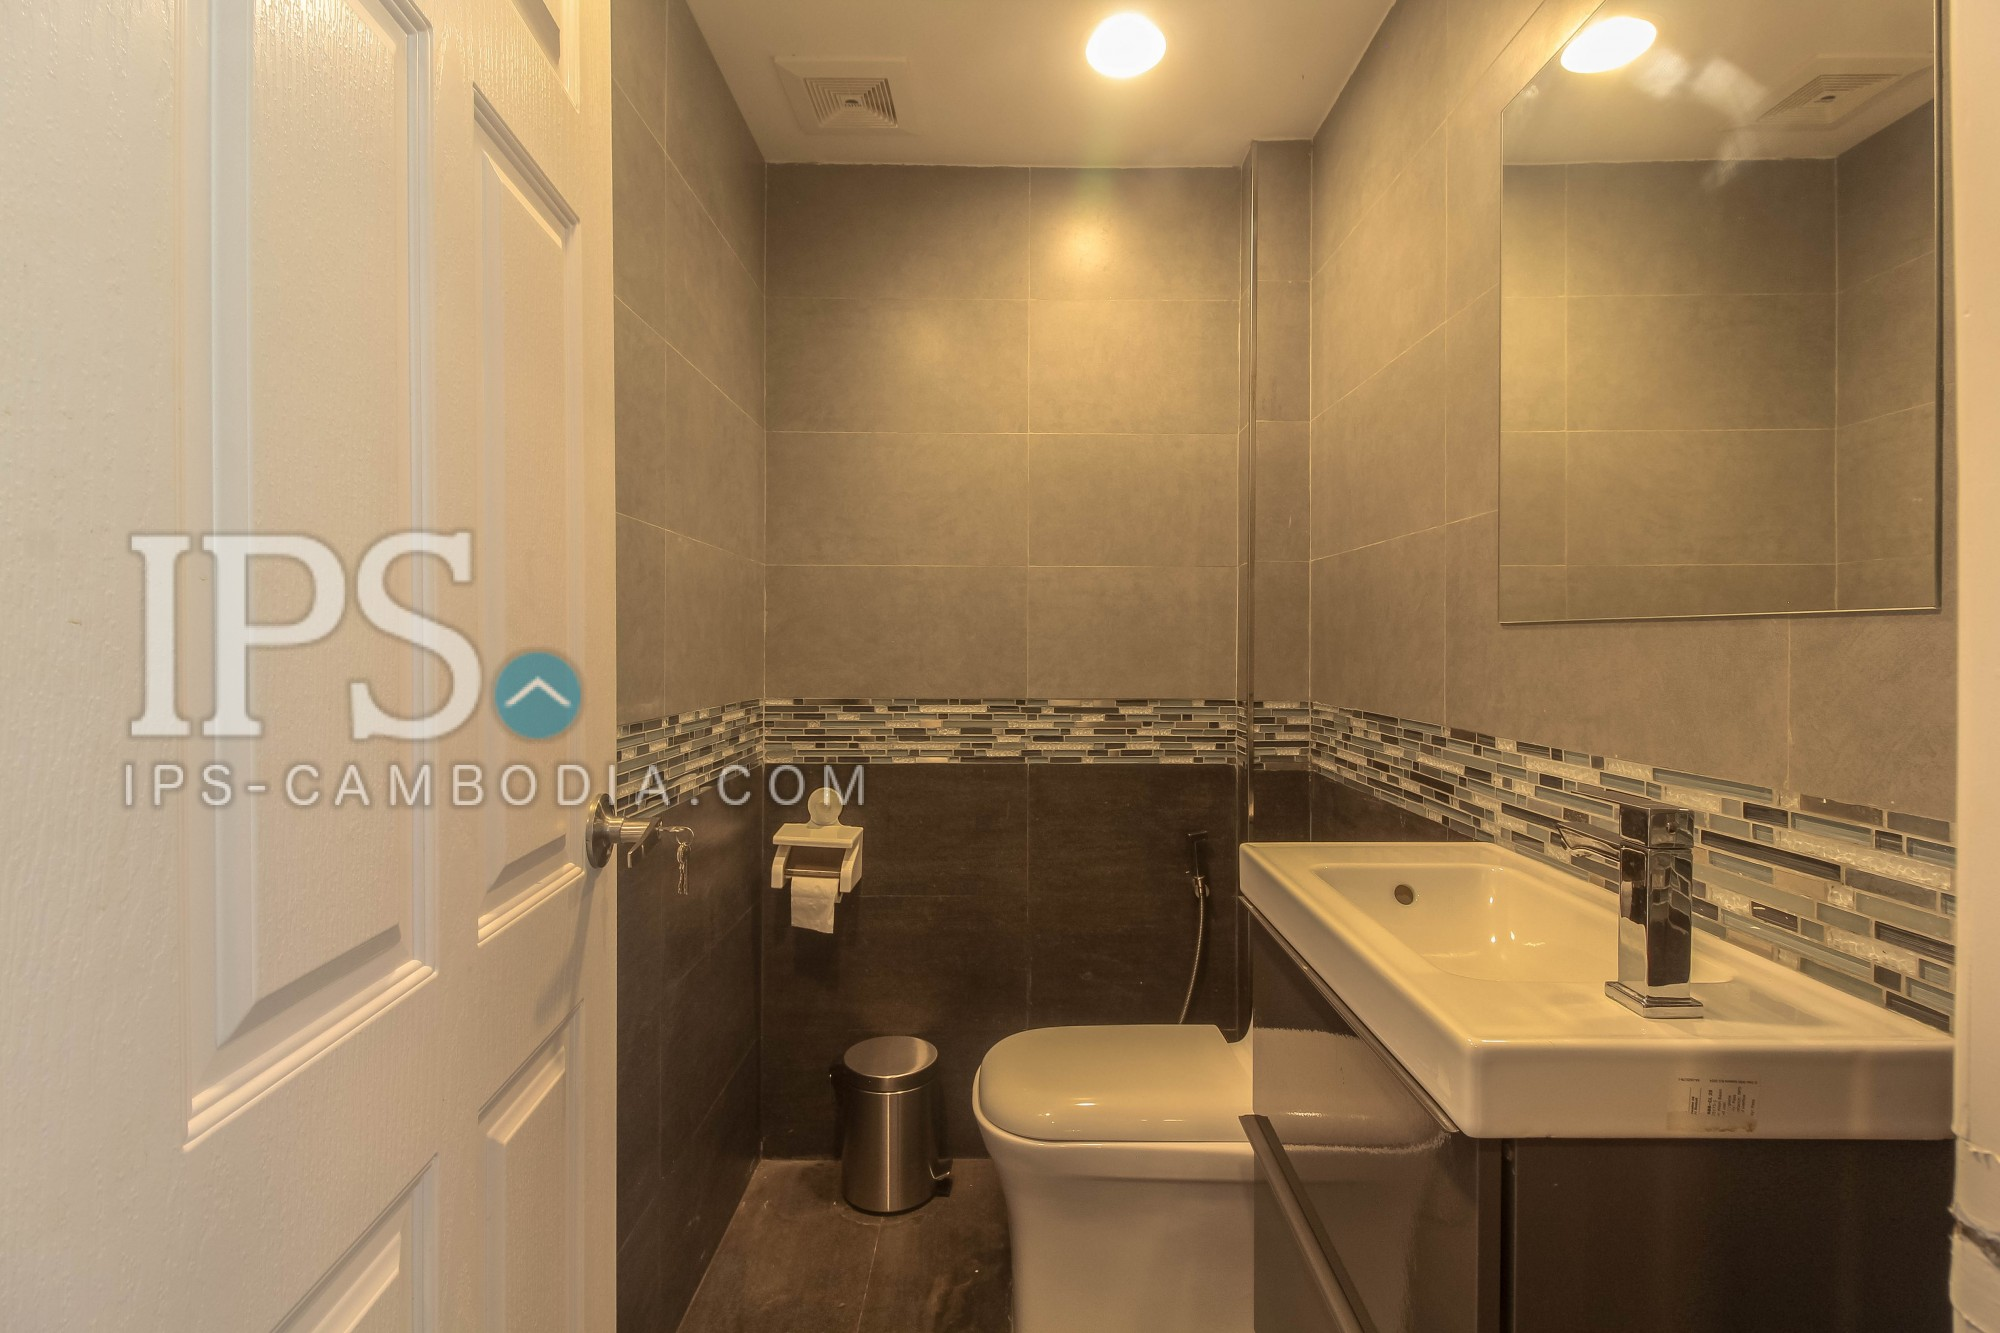 Western Style 1 Bedroom Apartment For Rent -Night Market, Siem Reap